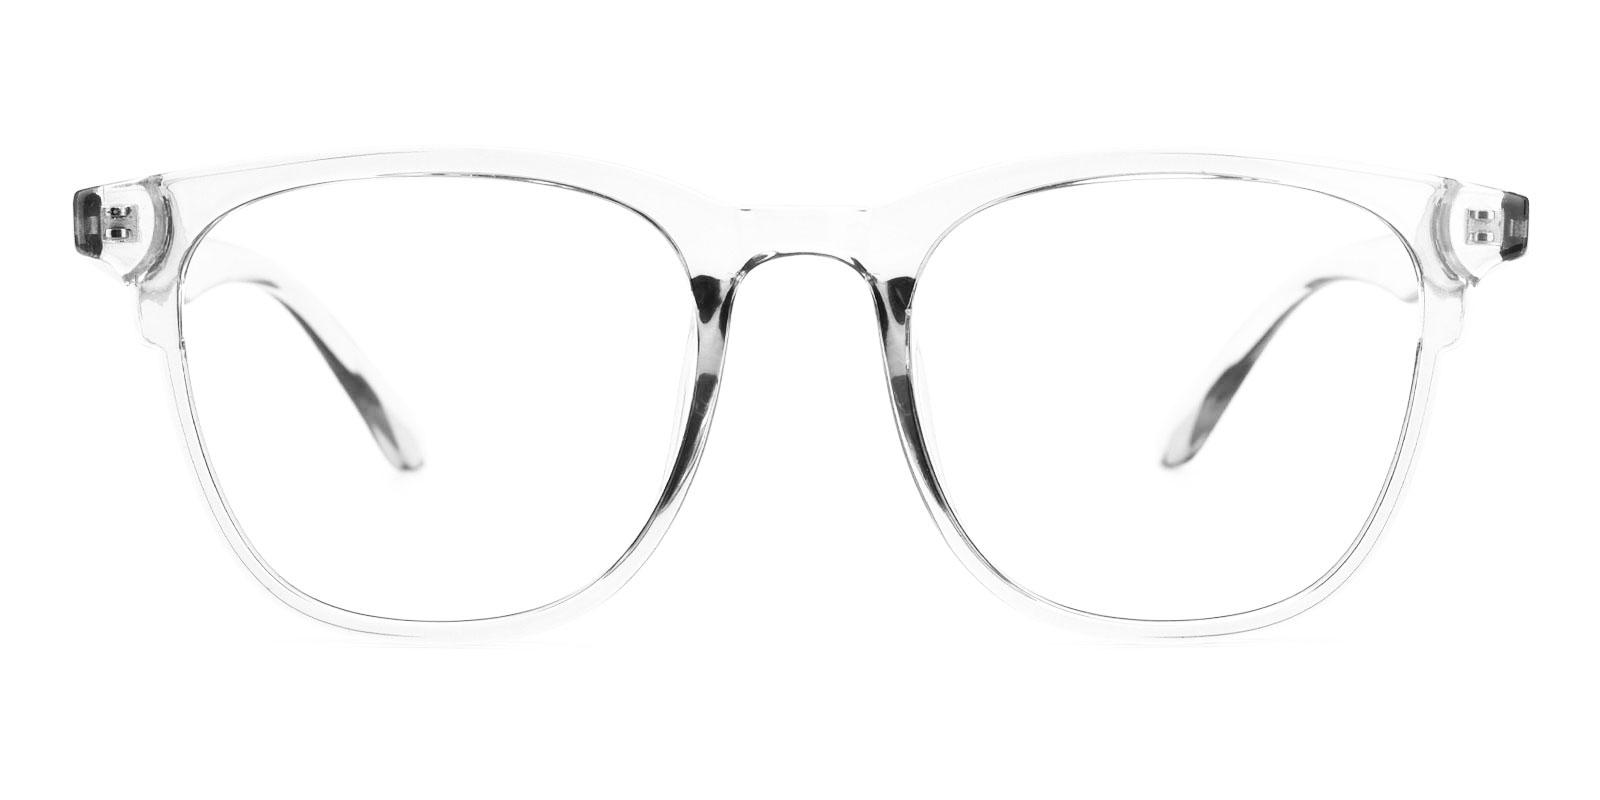 Luck-Translucent-Rectangle-TR-Eyeglasses-detail